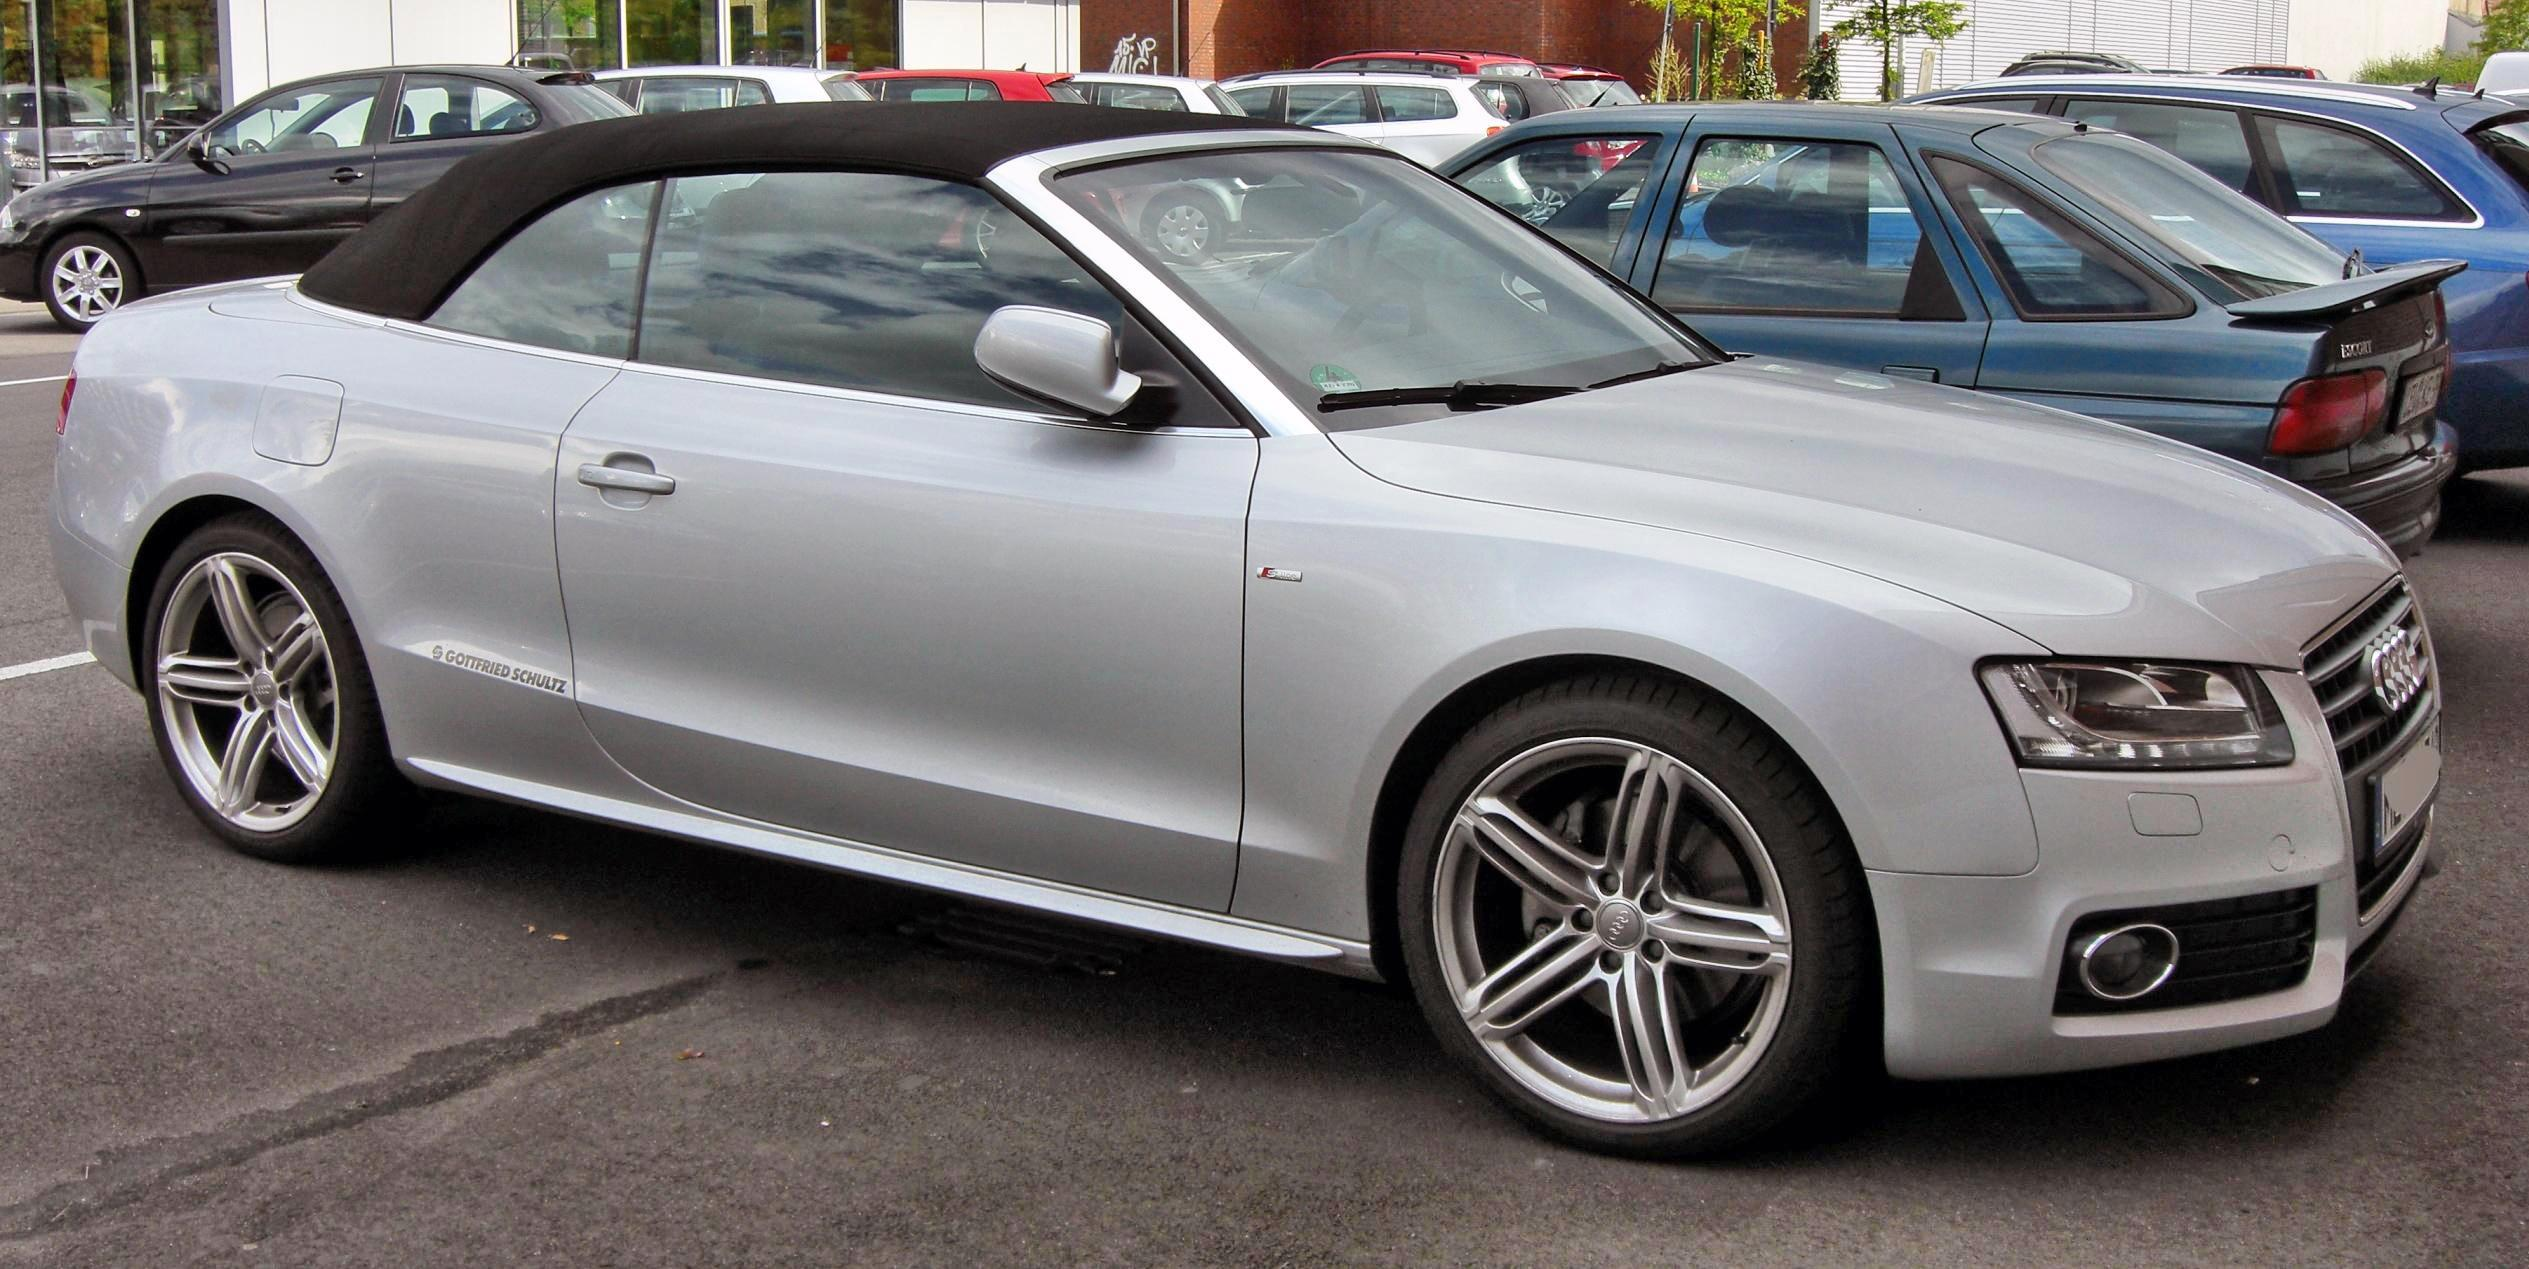 Audi s5 coupe wikipedia 6